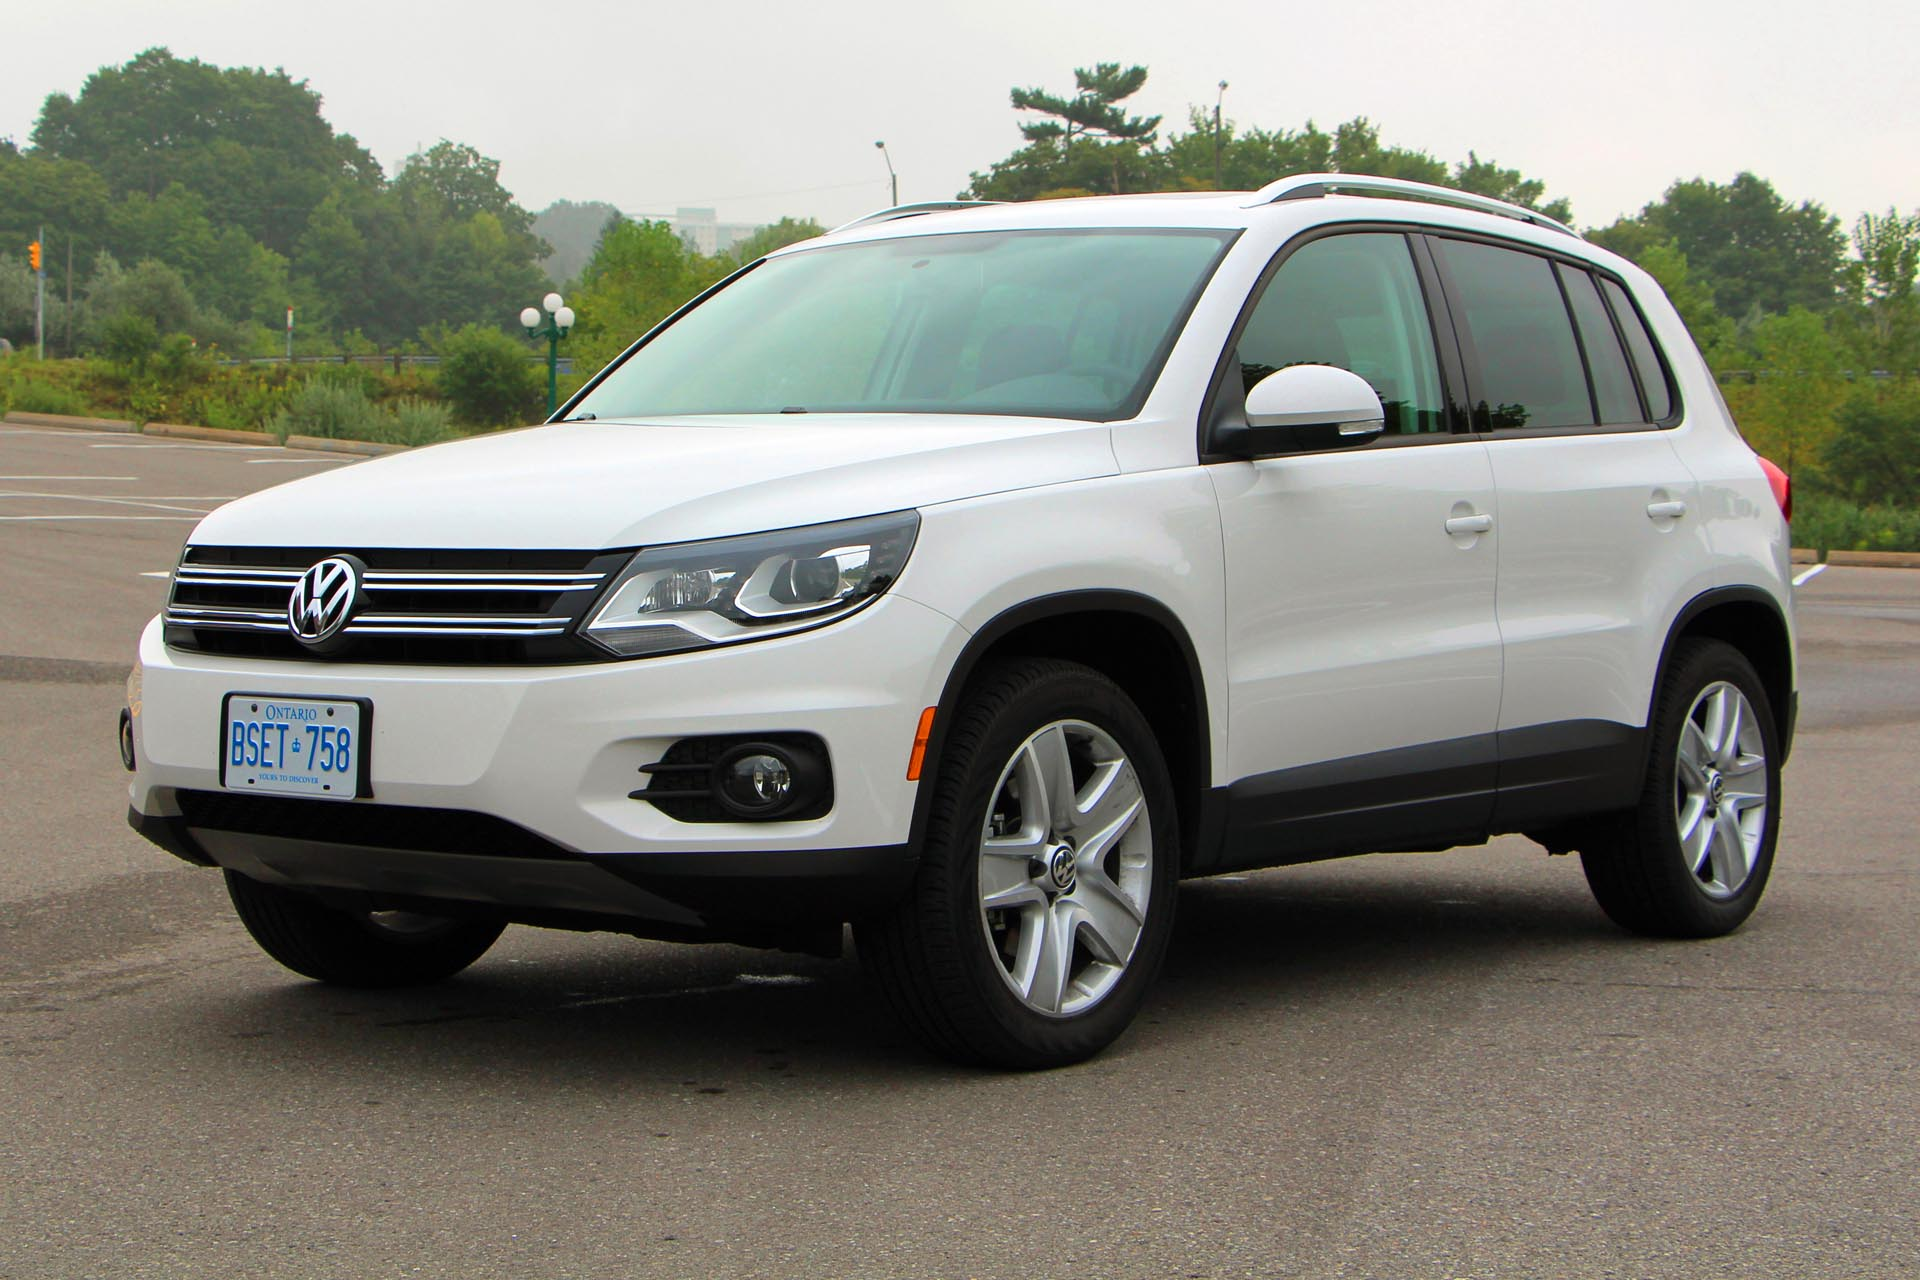 2014 volkswagen tiguan comfortline. Black Bedroom Furniture Sets. Home Design Ideas